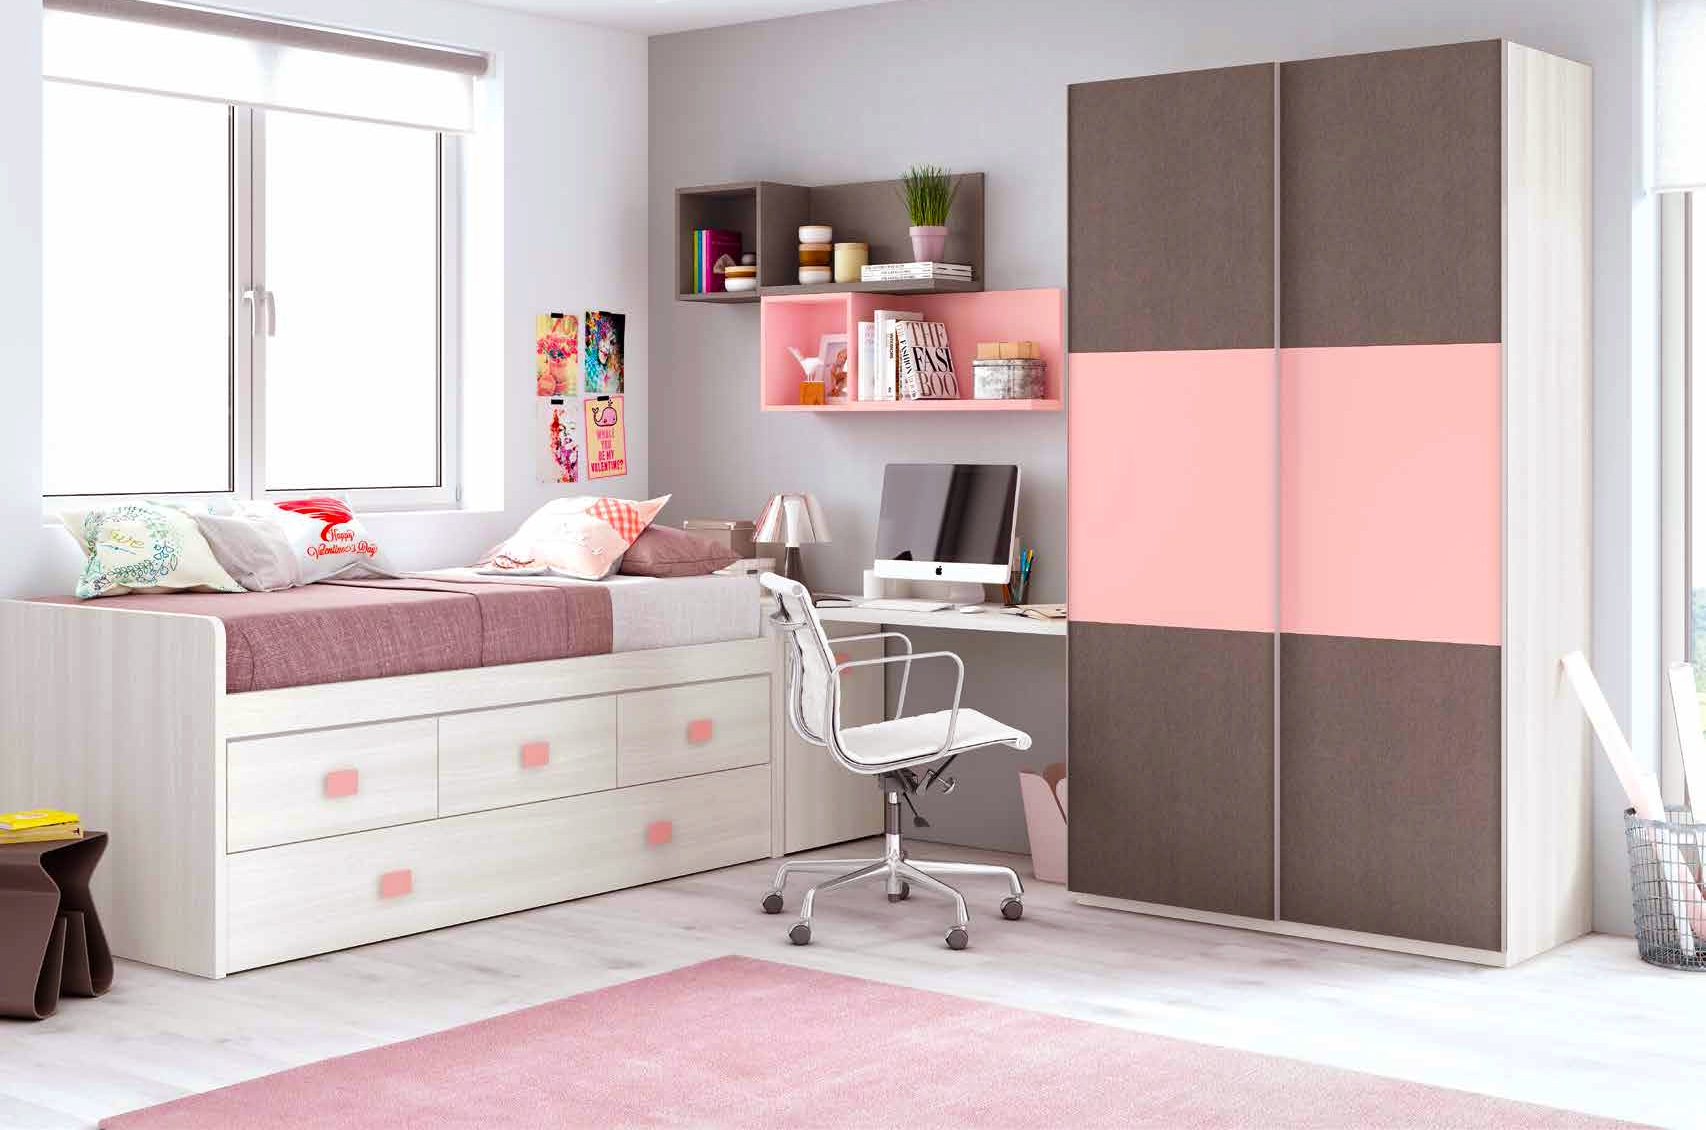 chambre fille rose avec une armoire coulissante glicerio. Black Bedroom Furniture Sets. Home Design Ideas